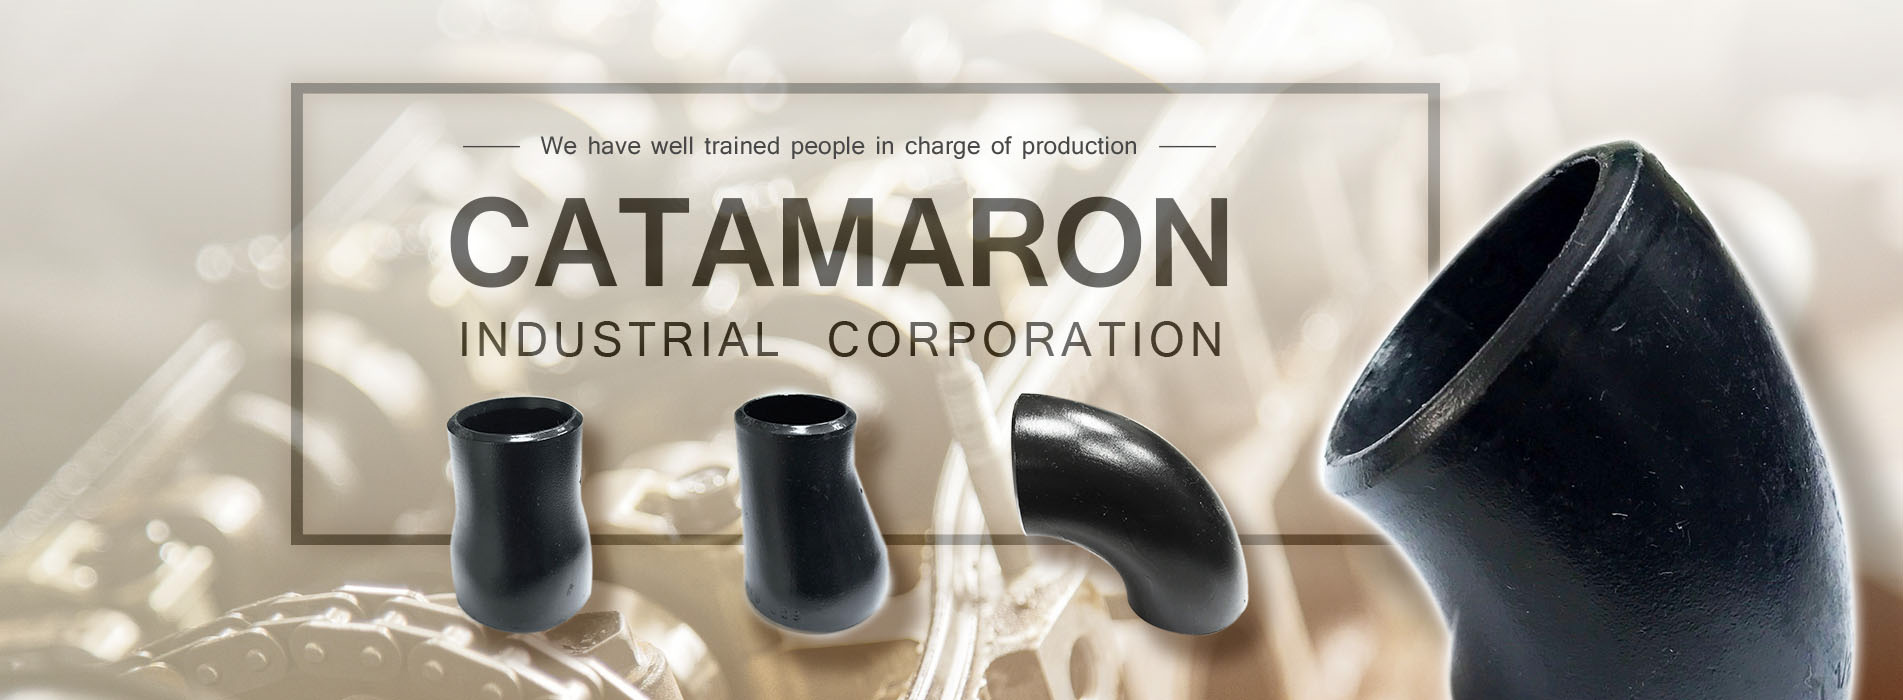 Catamaron Industrial Corporation...